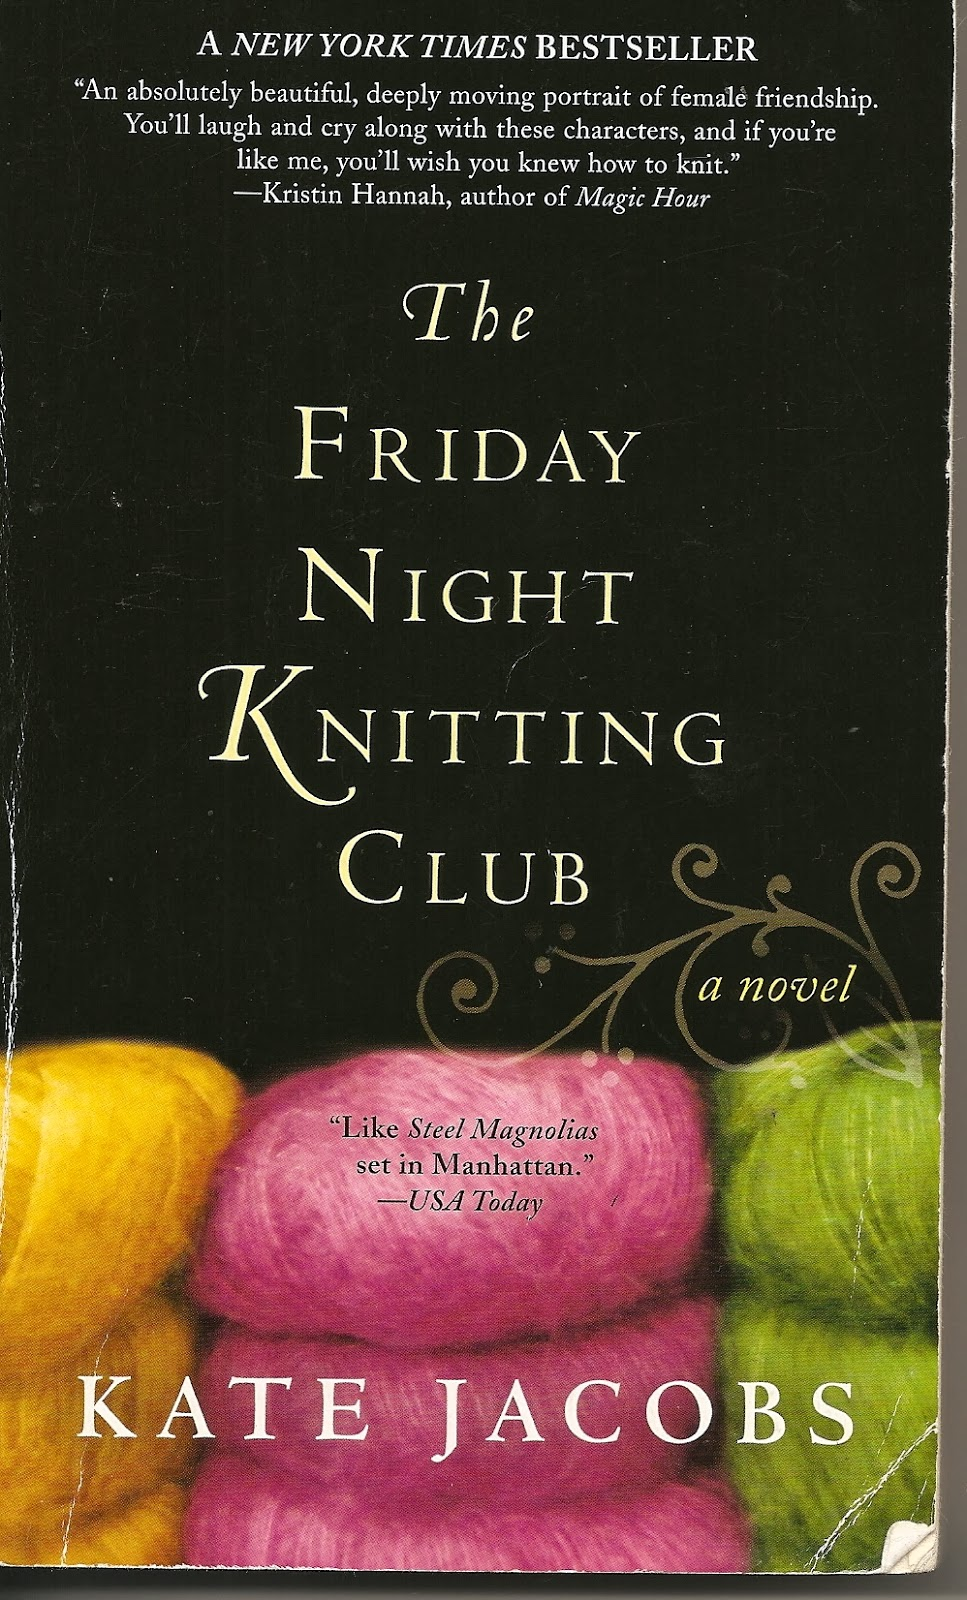 Knitting Club Book : Cozy in texas the friday night knitting club by kate jacobs